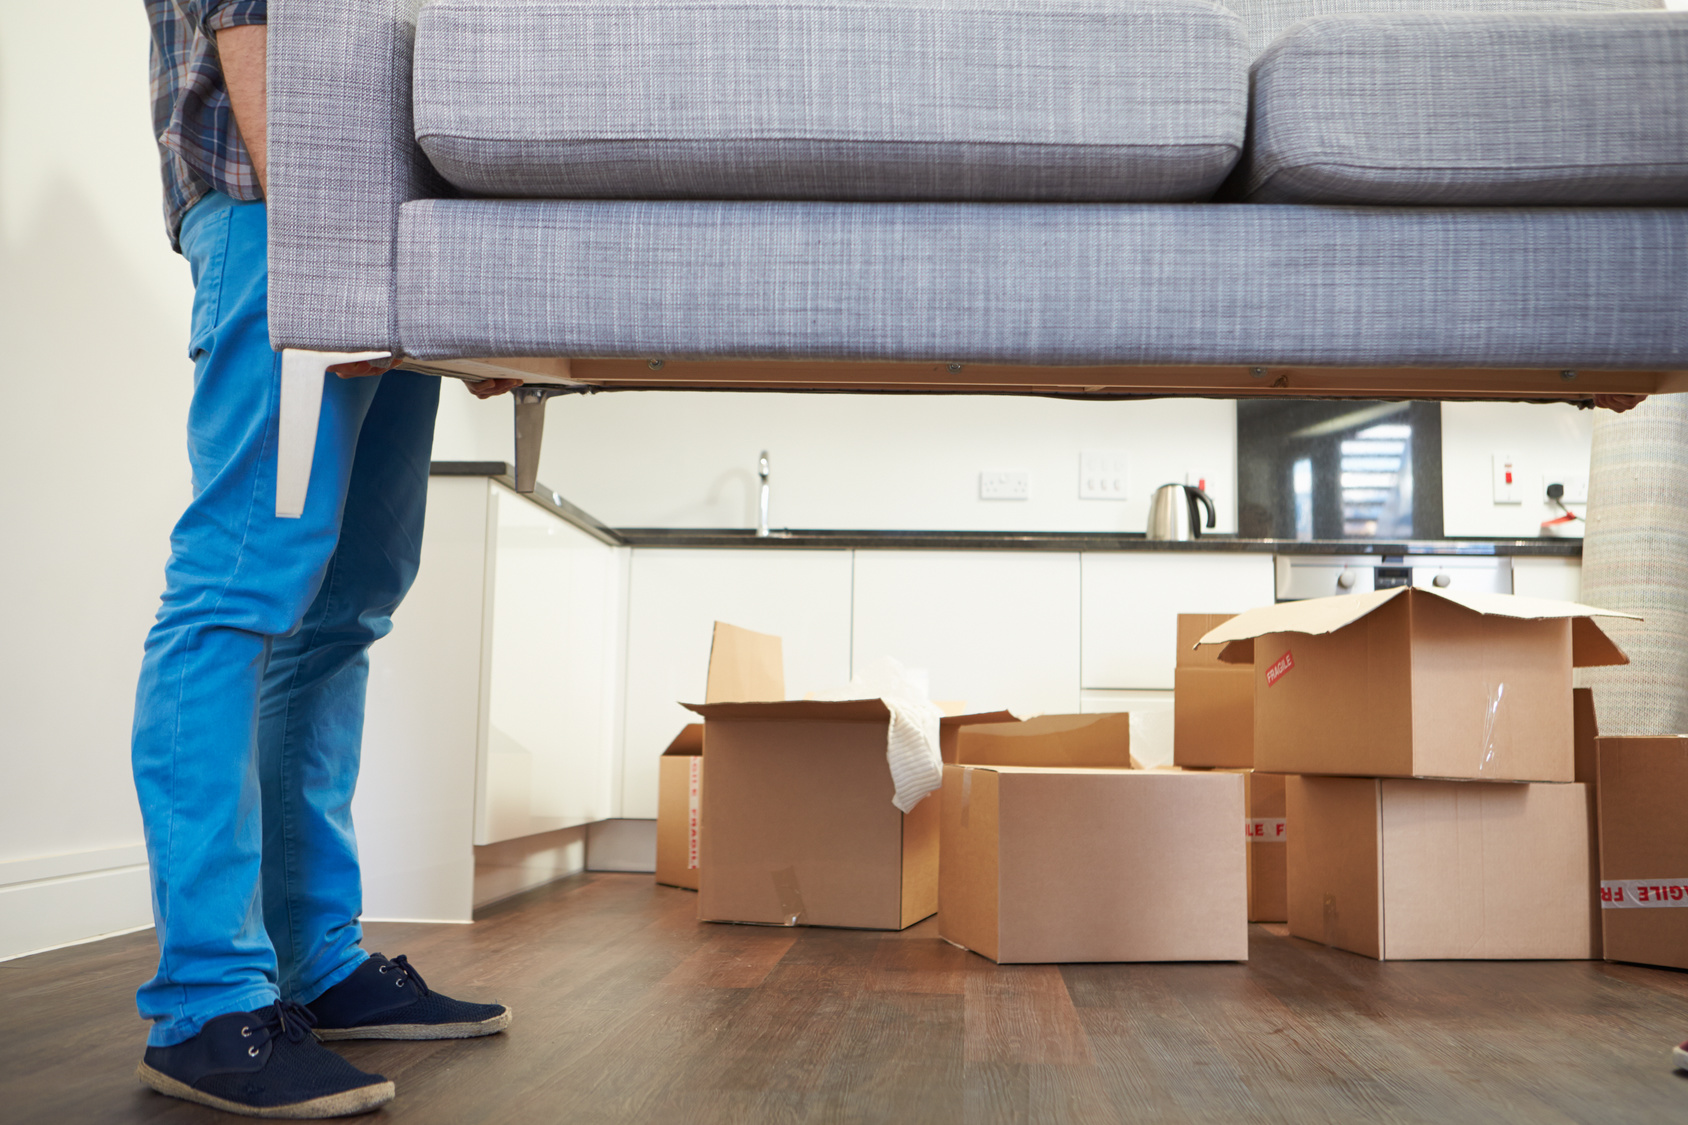 Man-Carrying-Sofa-When-Moving-into-New-House